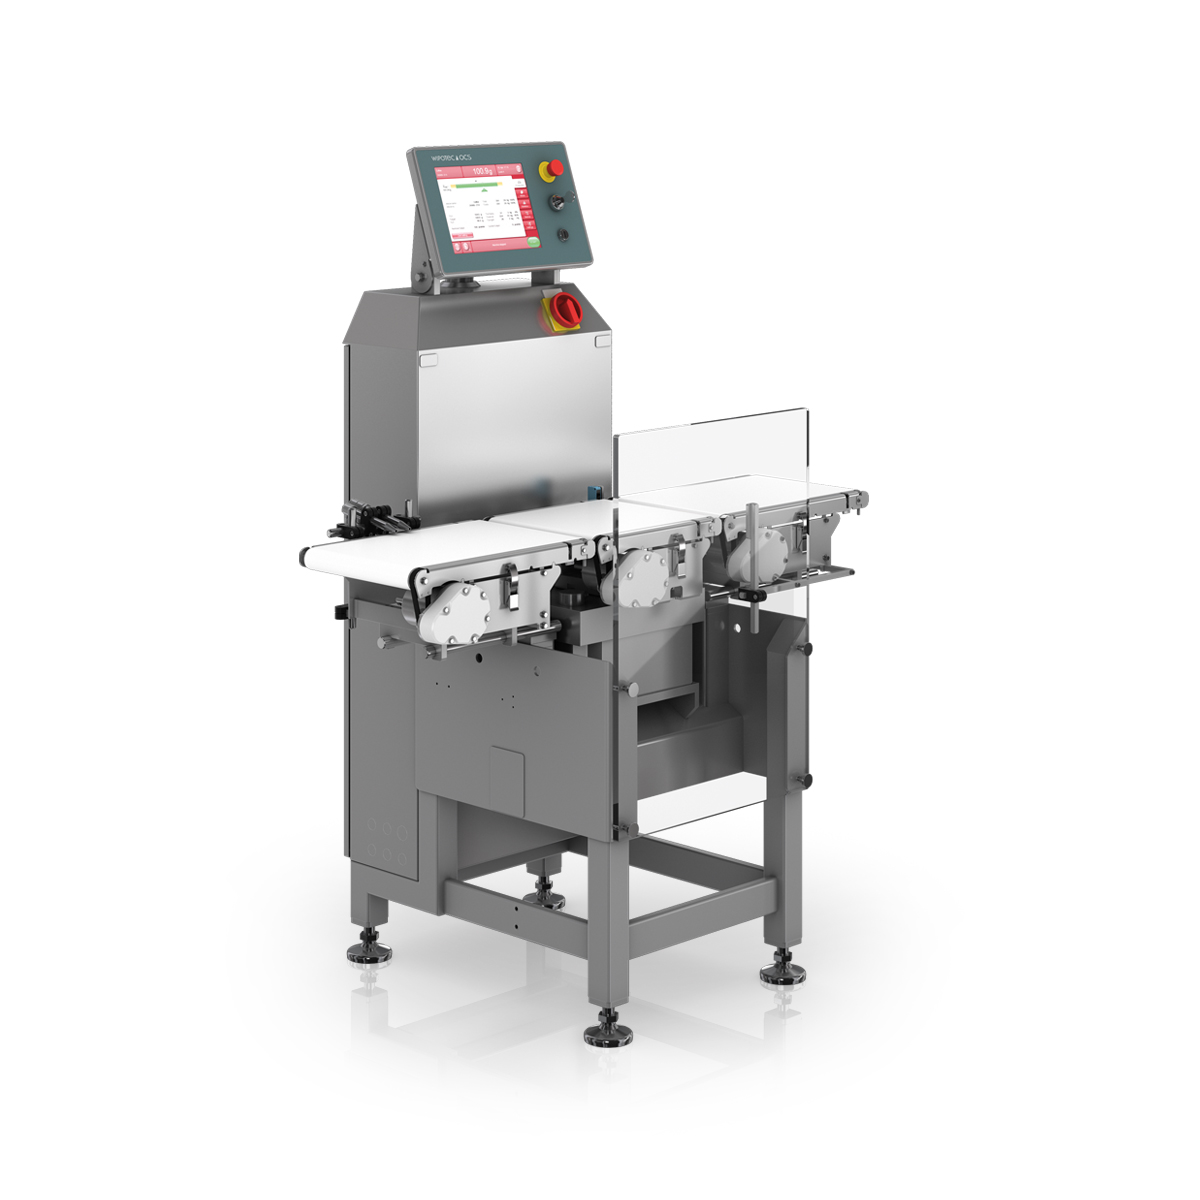 Checkweigher HC-M-VA left view